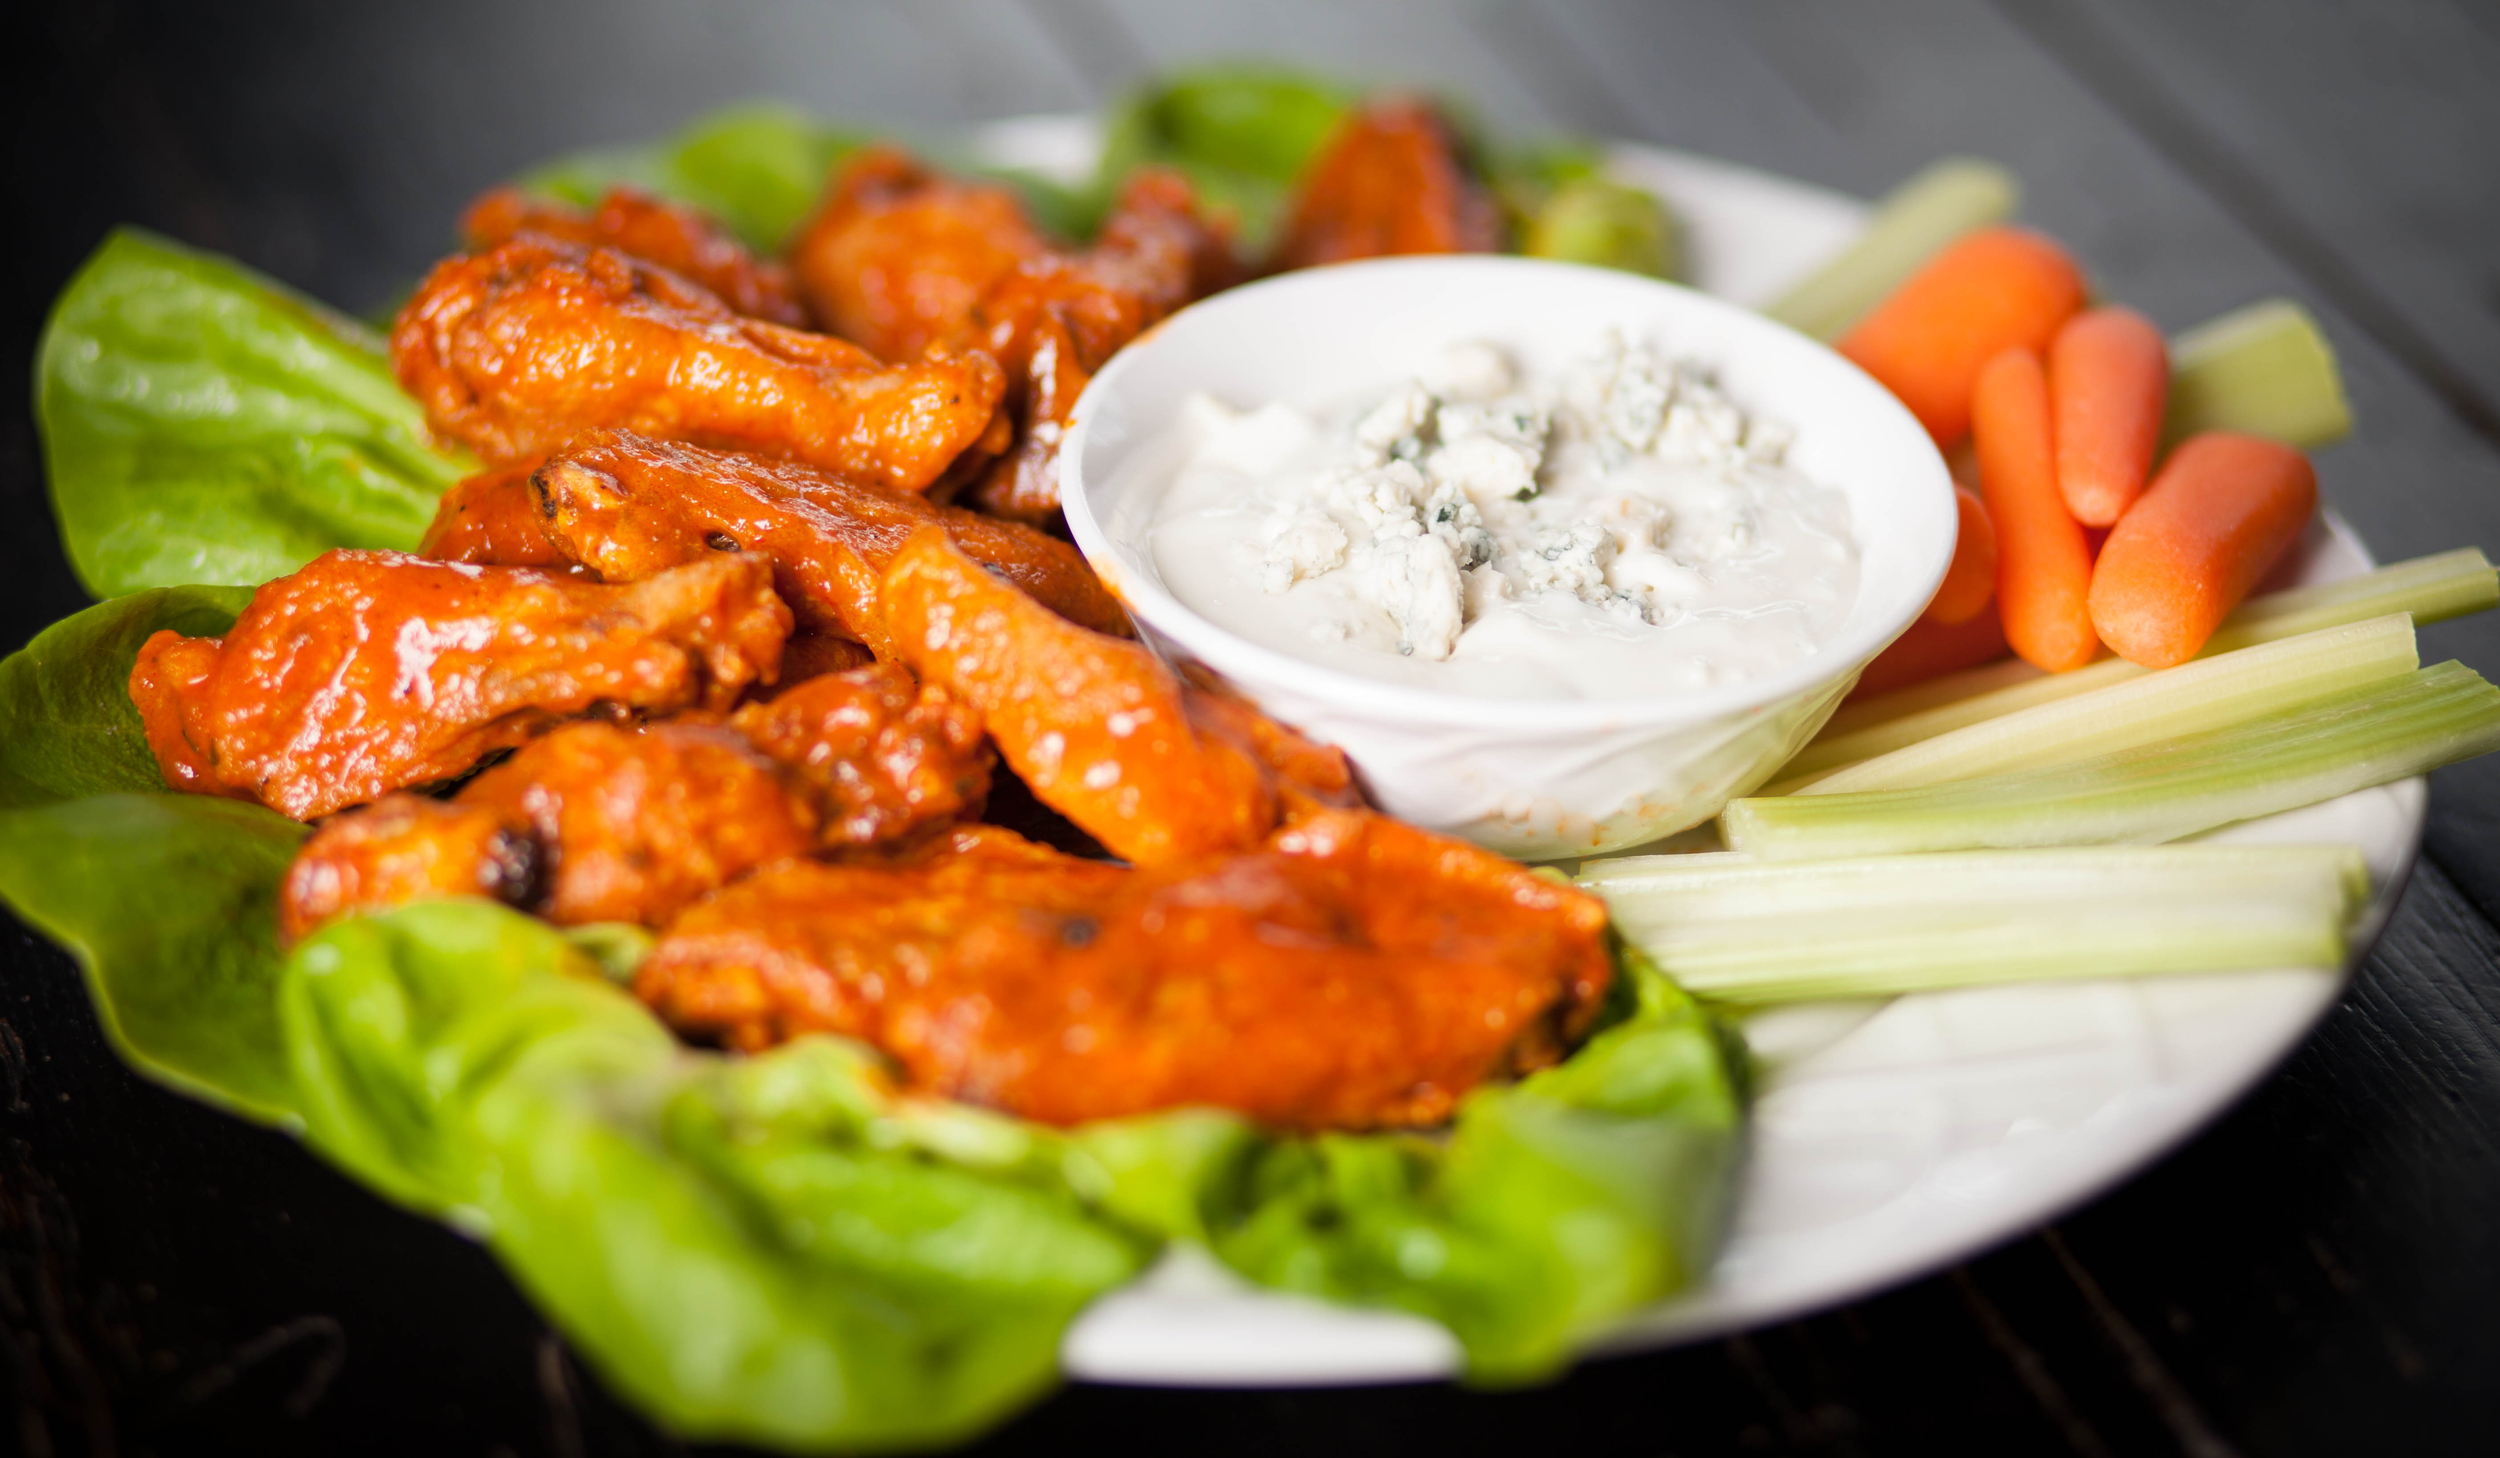 JB's Best Hearty Hot Sauce Buffalo Chicken Wings